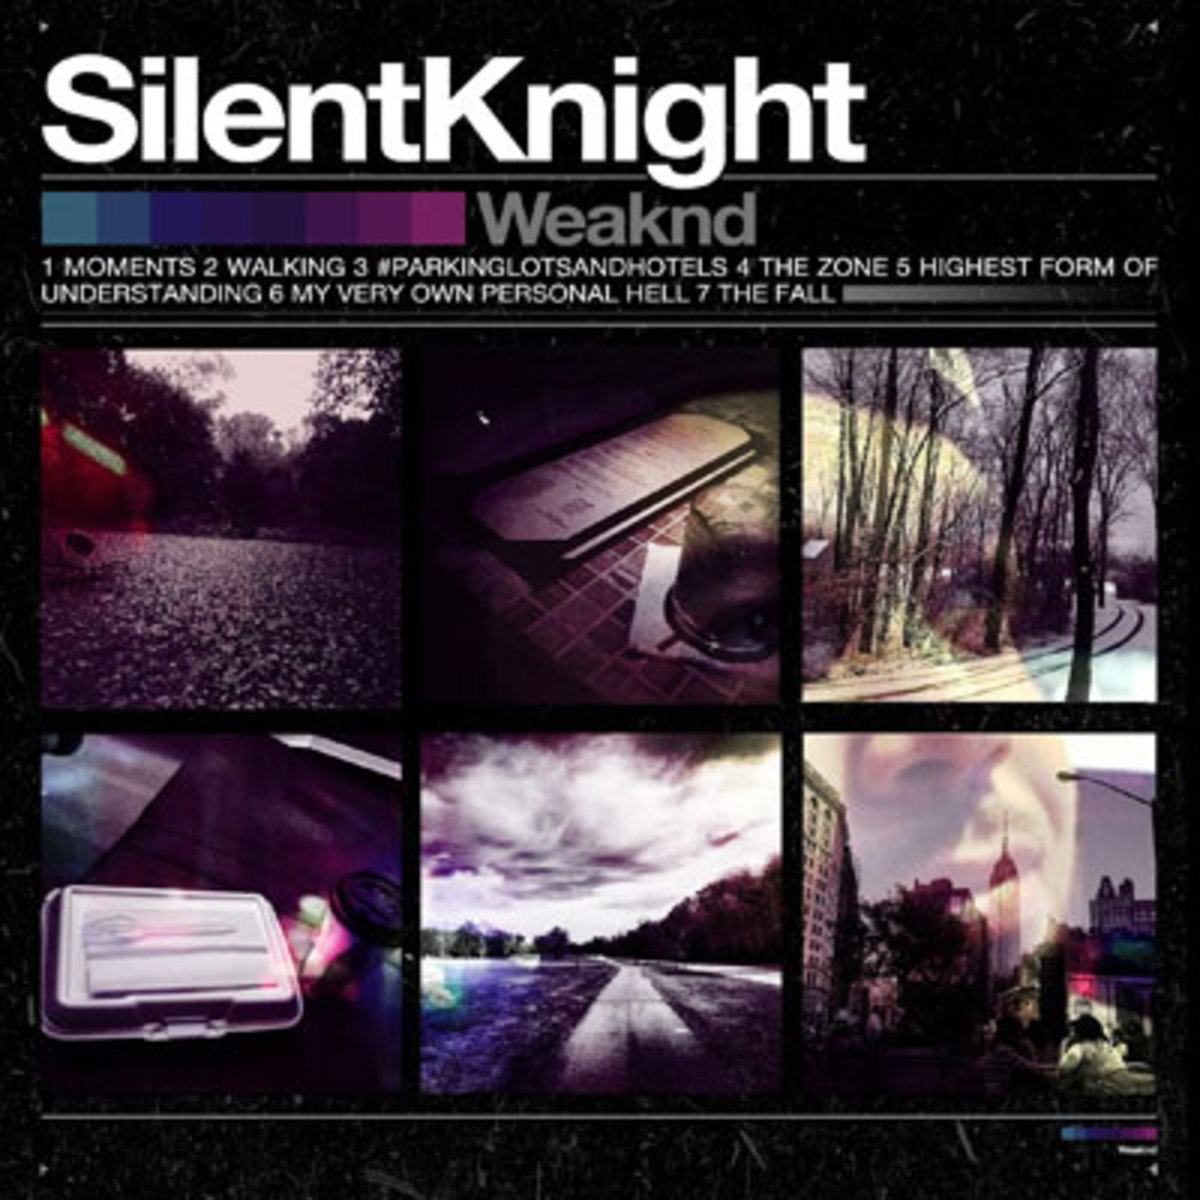 silent-knight-weaknd.jpg